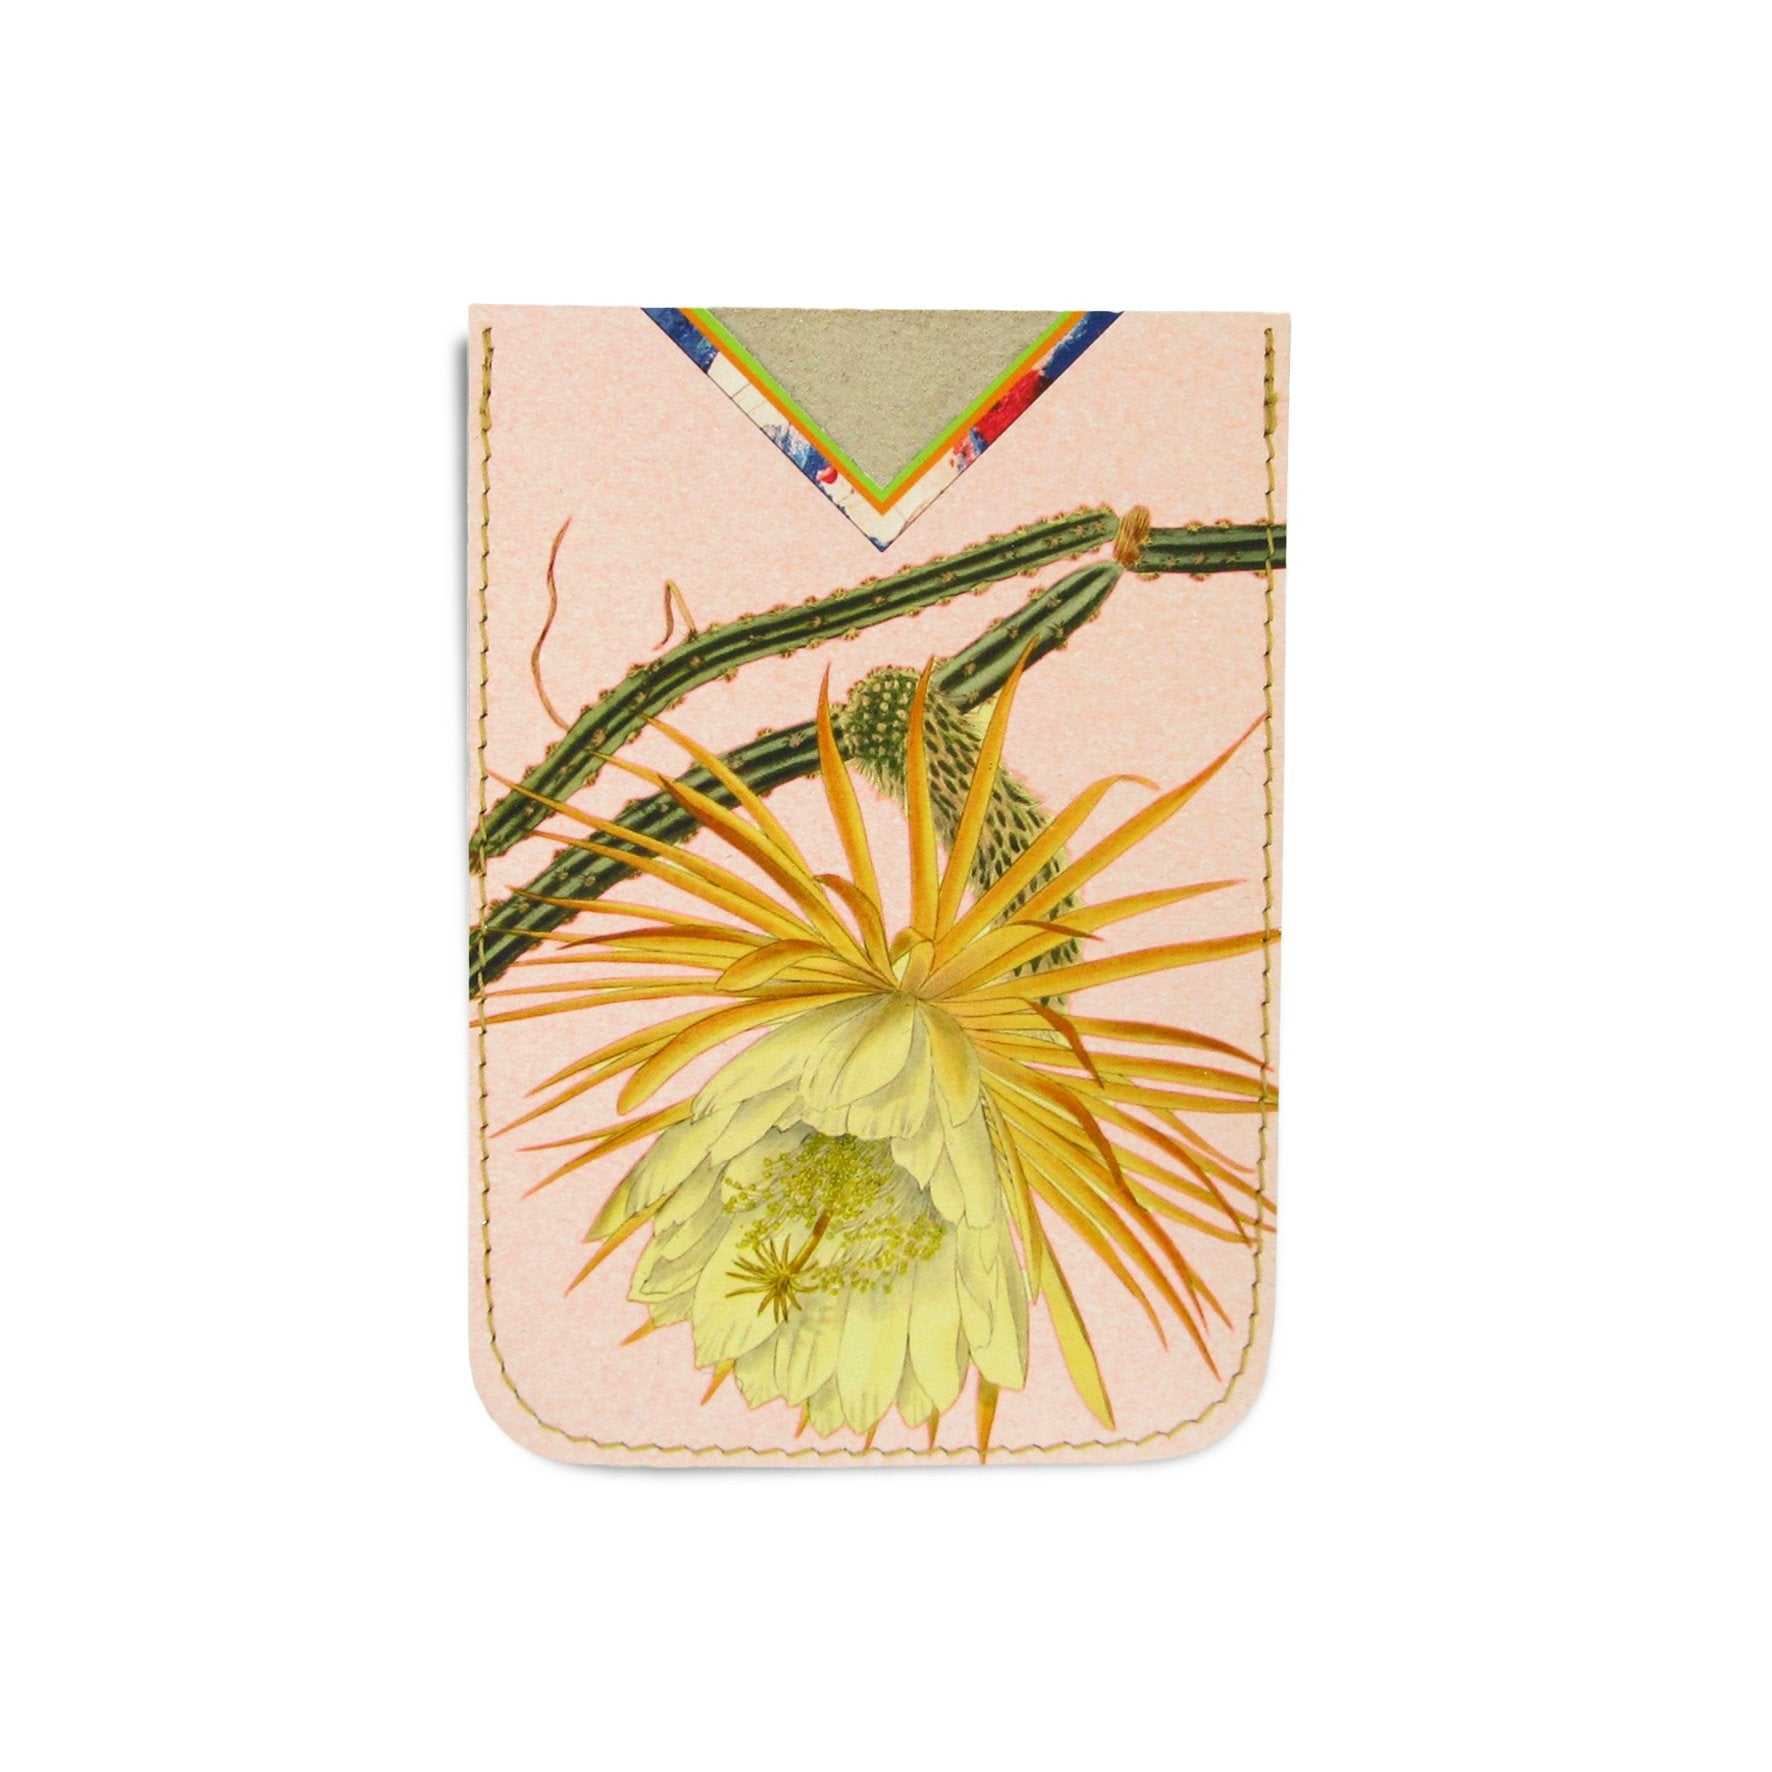 Leather Card Holder / Phone Sticker Wallet Pocket - Cactus Flower Wallet Tovi Sorga Standard Card Holder Without personalisation Peach